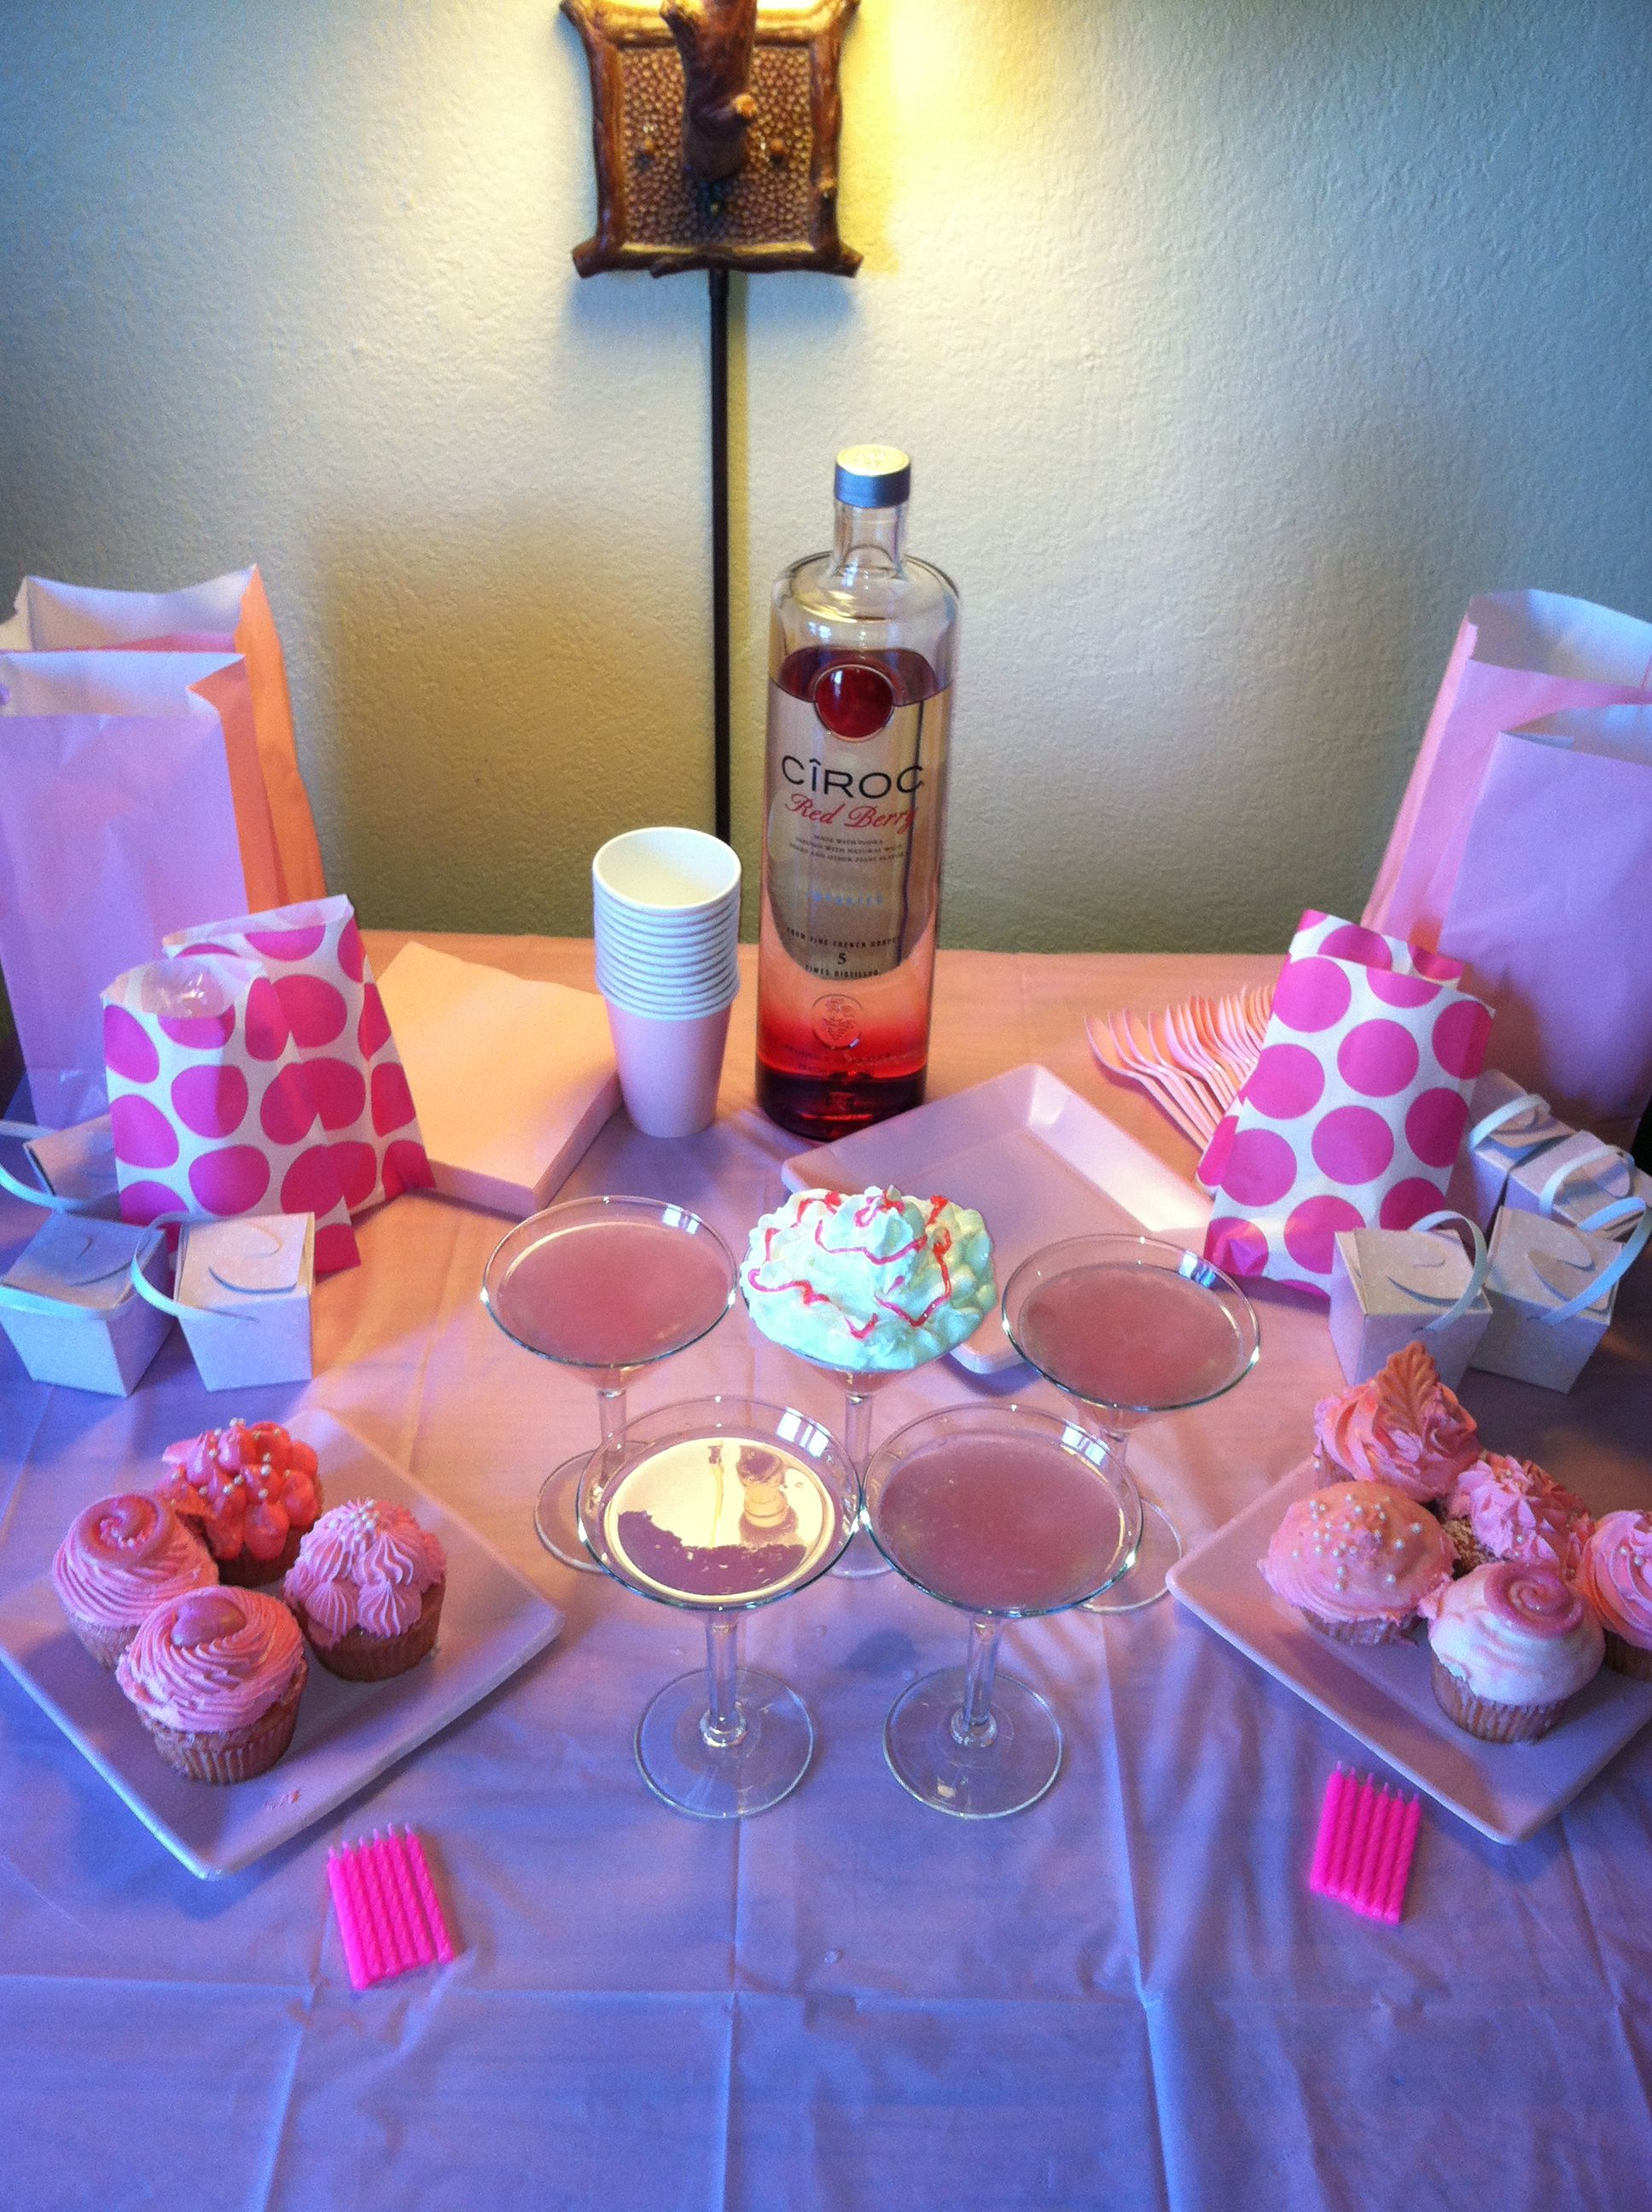 My decor for my Pink Party